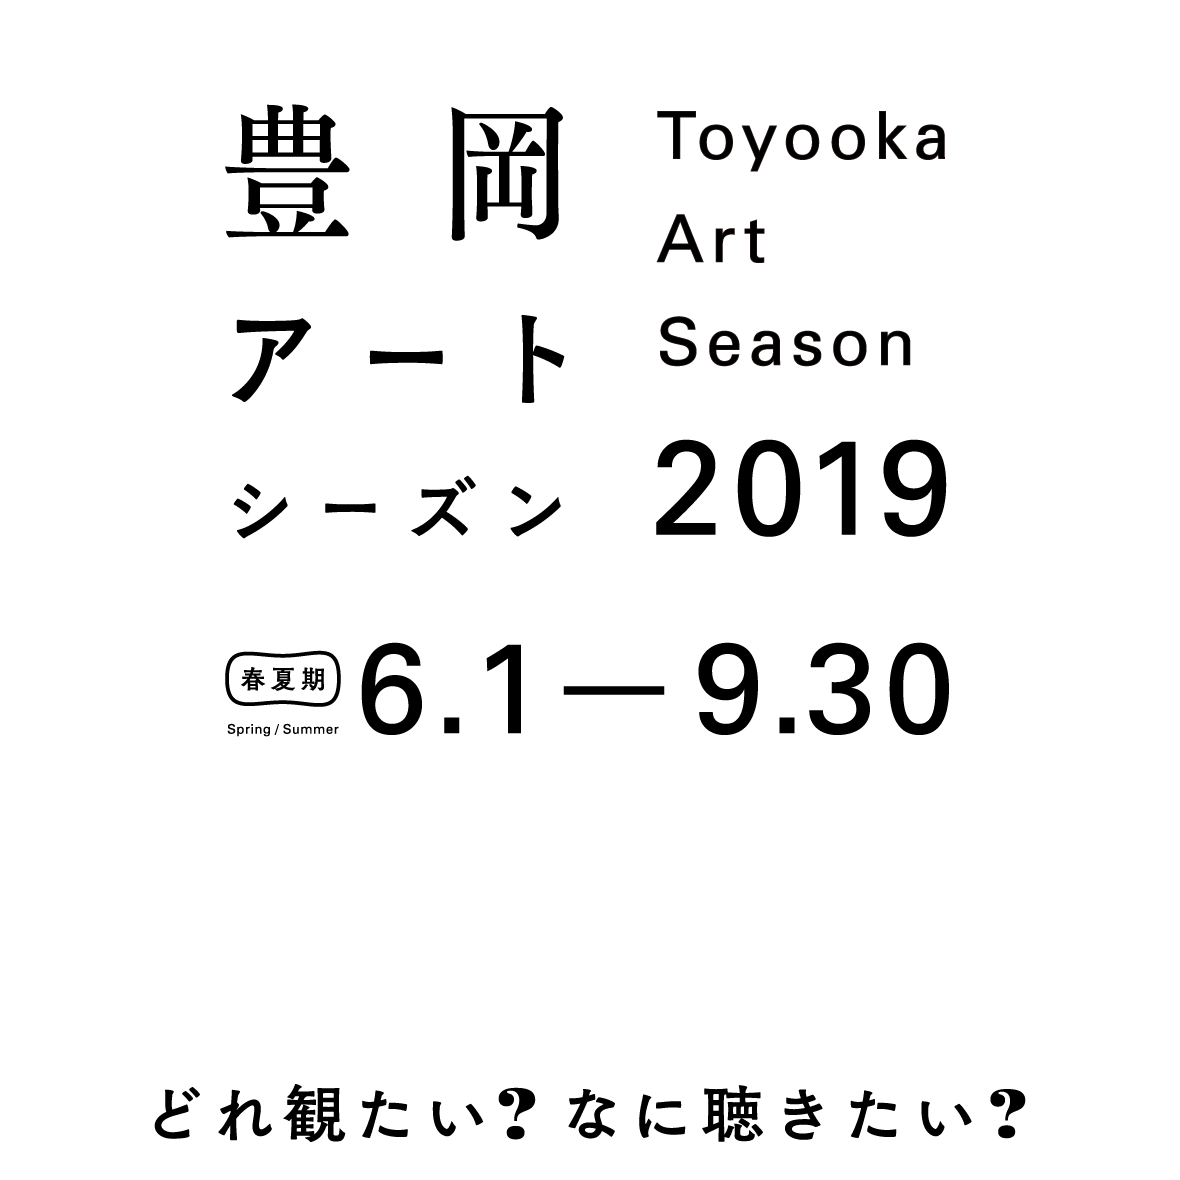 Toyooka Art Season 2019 SUMMER